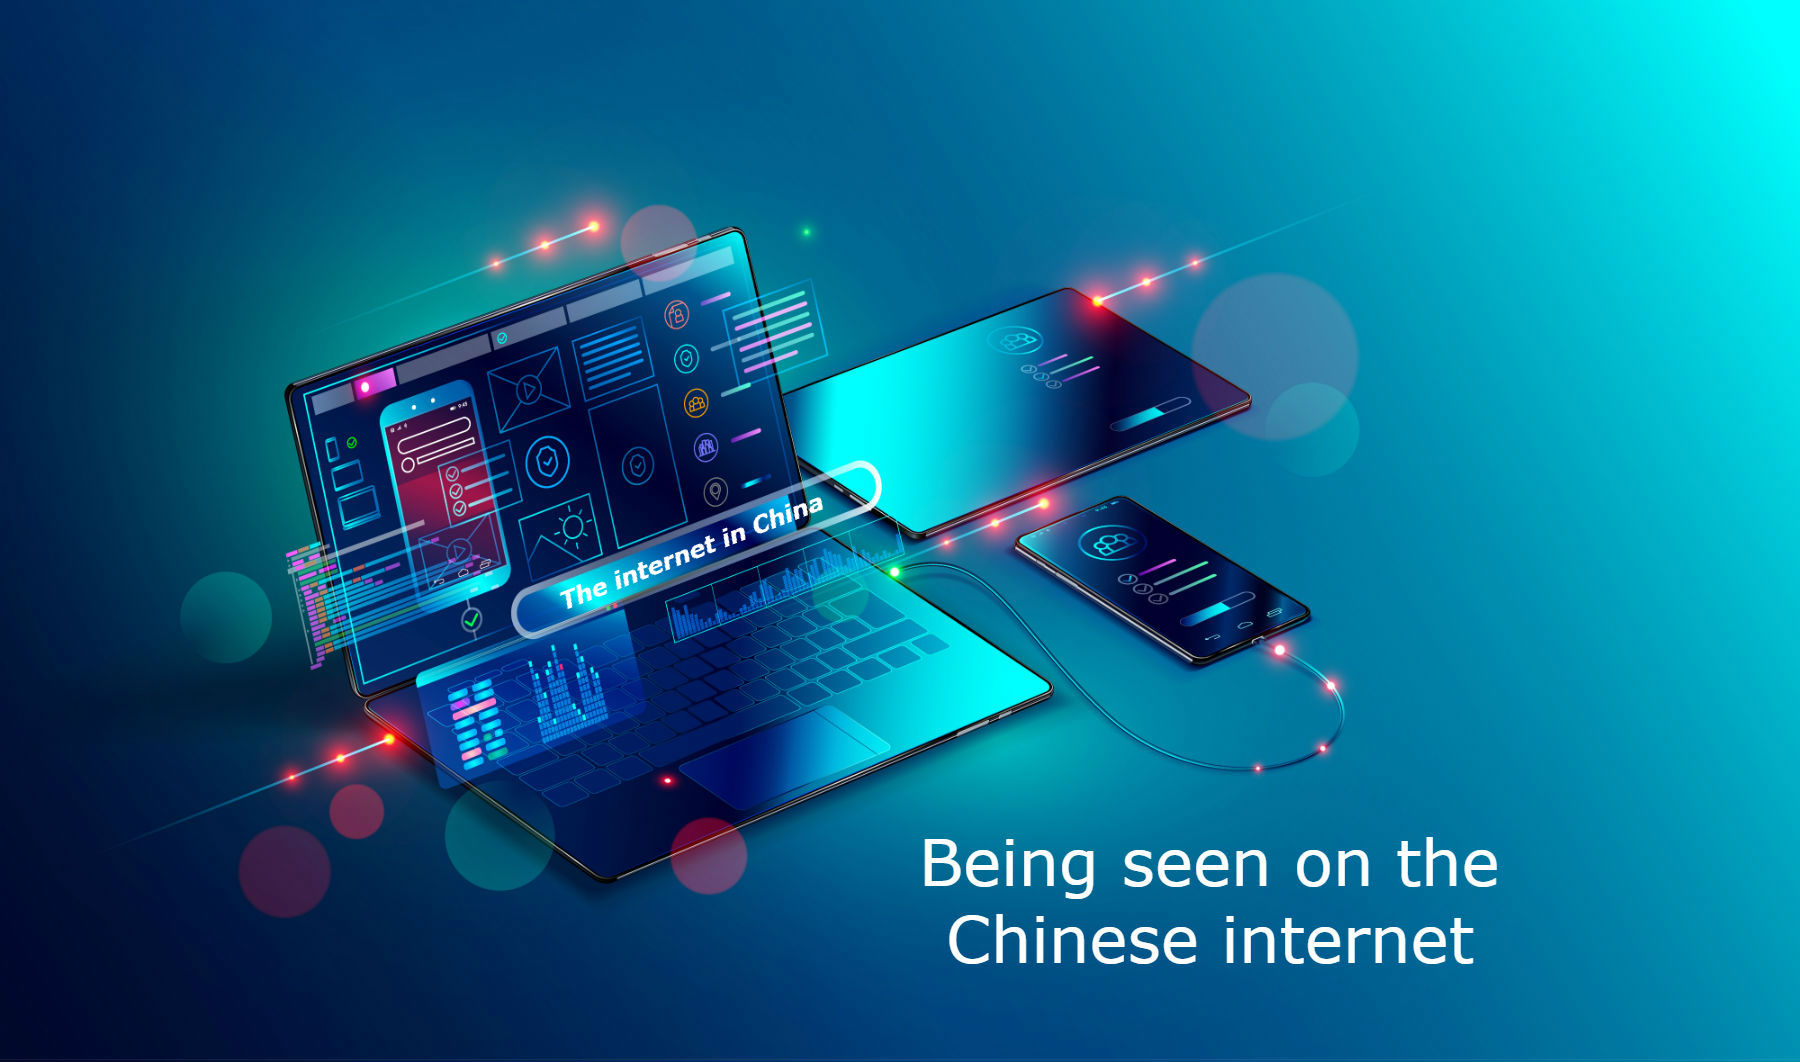 Being seen on the Chinese internet2